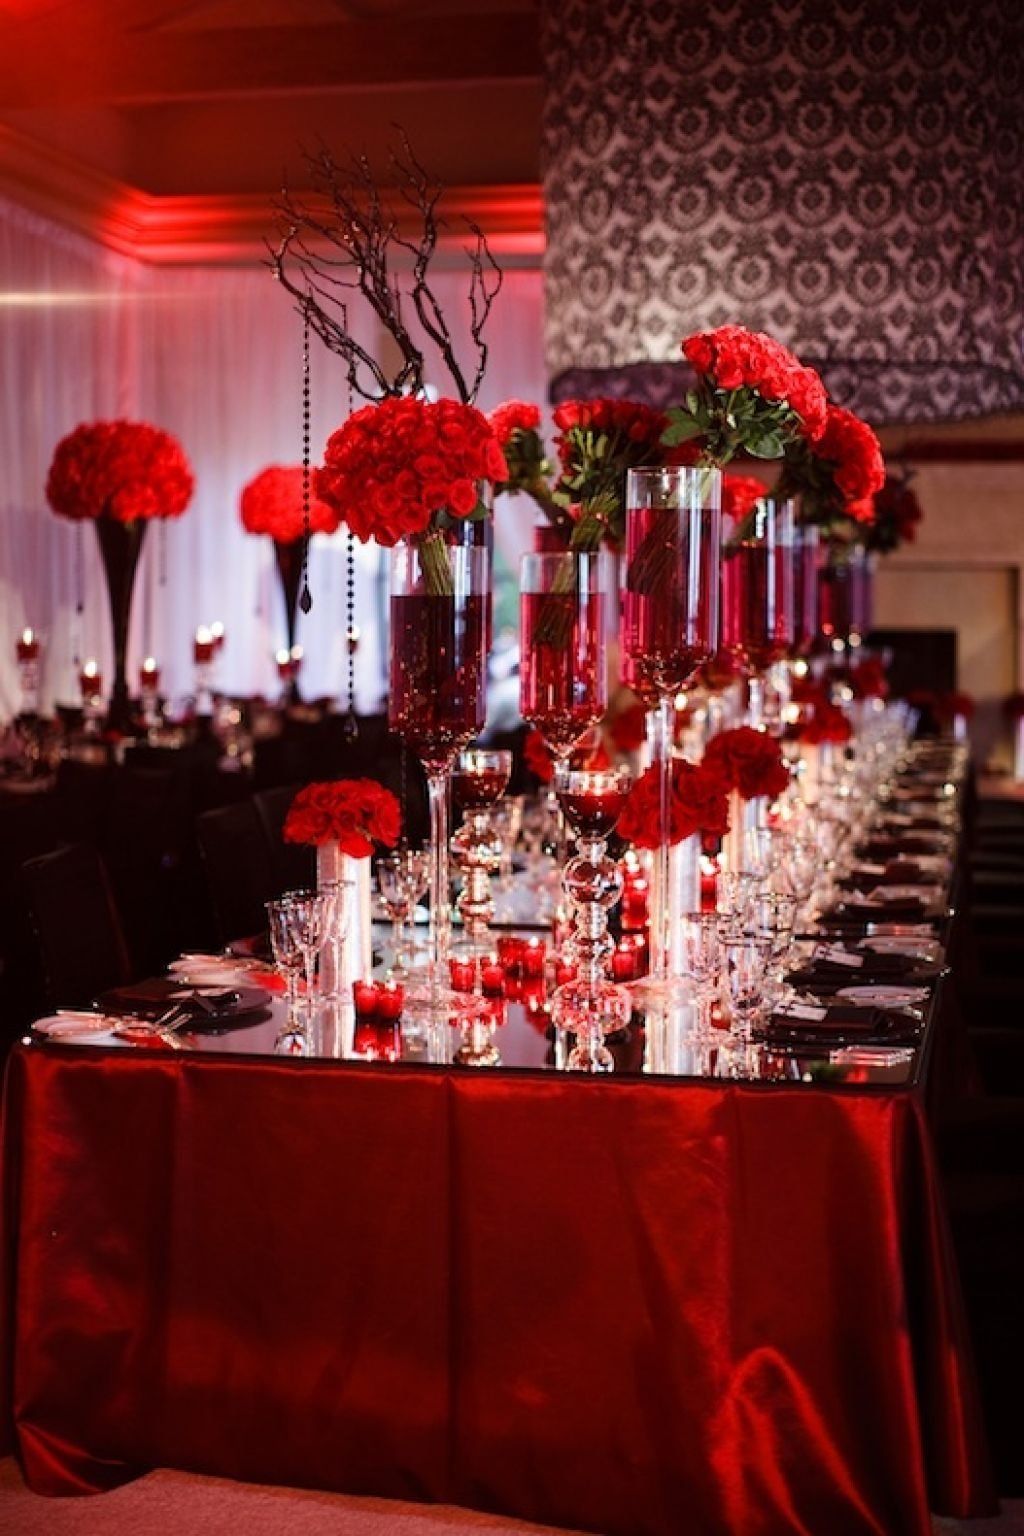 10 Stunning Black And Red Wedding Ideas red white and black wedding table decorating ideas wedding in 2020